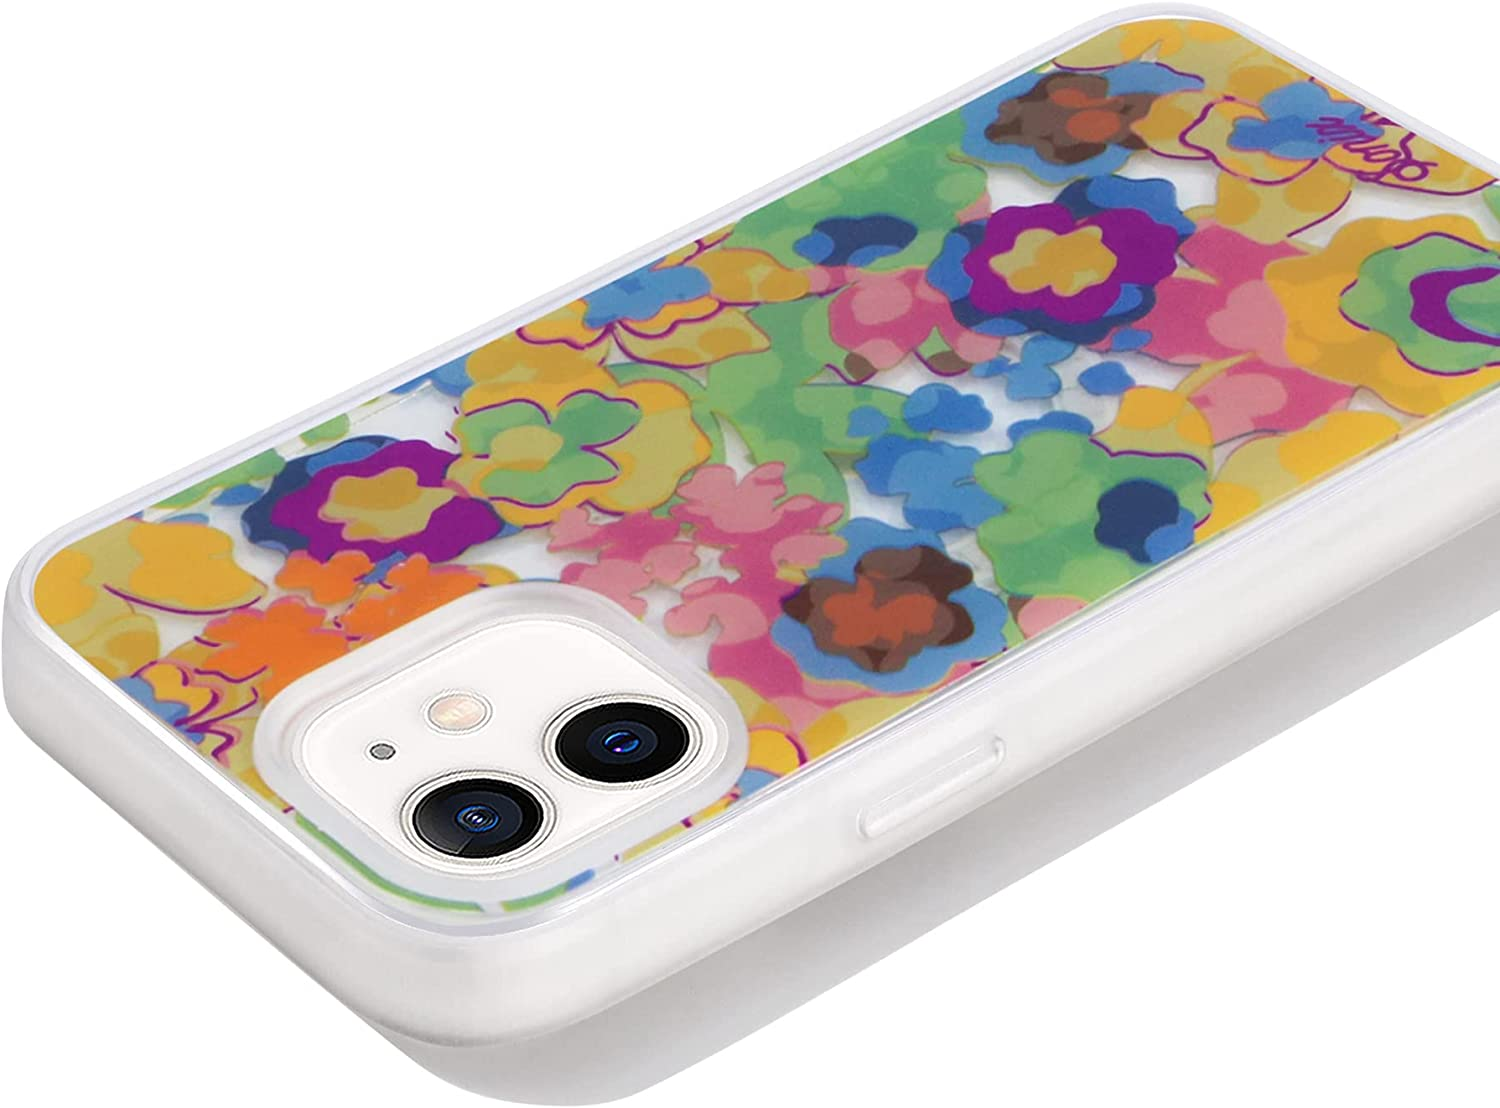 Sonix Bloomy Case for iPhone iPhone 12/12 Pro Featuring Built in Self-Aligning Compatibility with MagSafe Charging [10ft Drop Tested] Protective Abstract Floral Case for Apple iPhone 12, iPhone 12 Pro